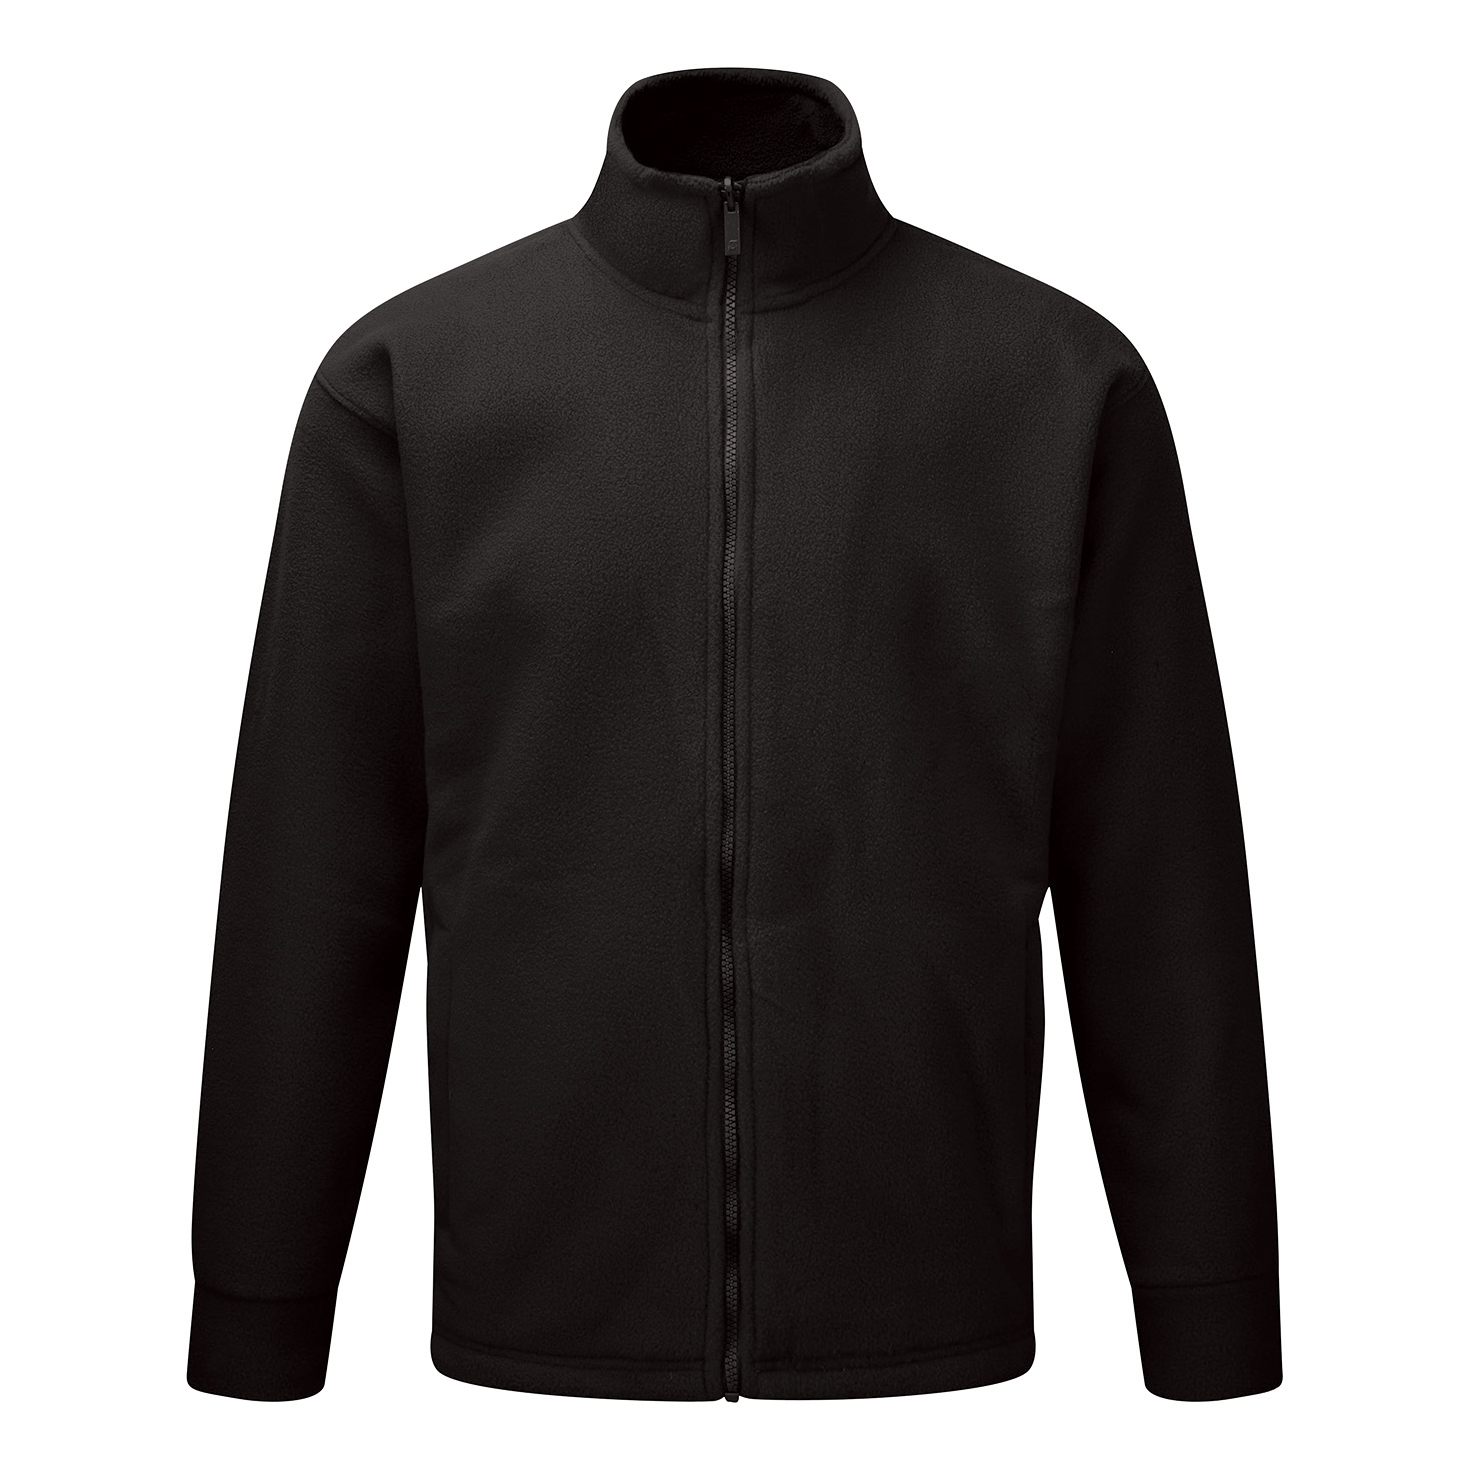 Classic Fleece Jacket Elasticated Cuffs Full Zip Front Medium Black Ref FLJBLL 1-3 Days Lead Time